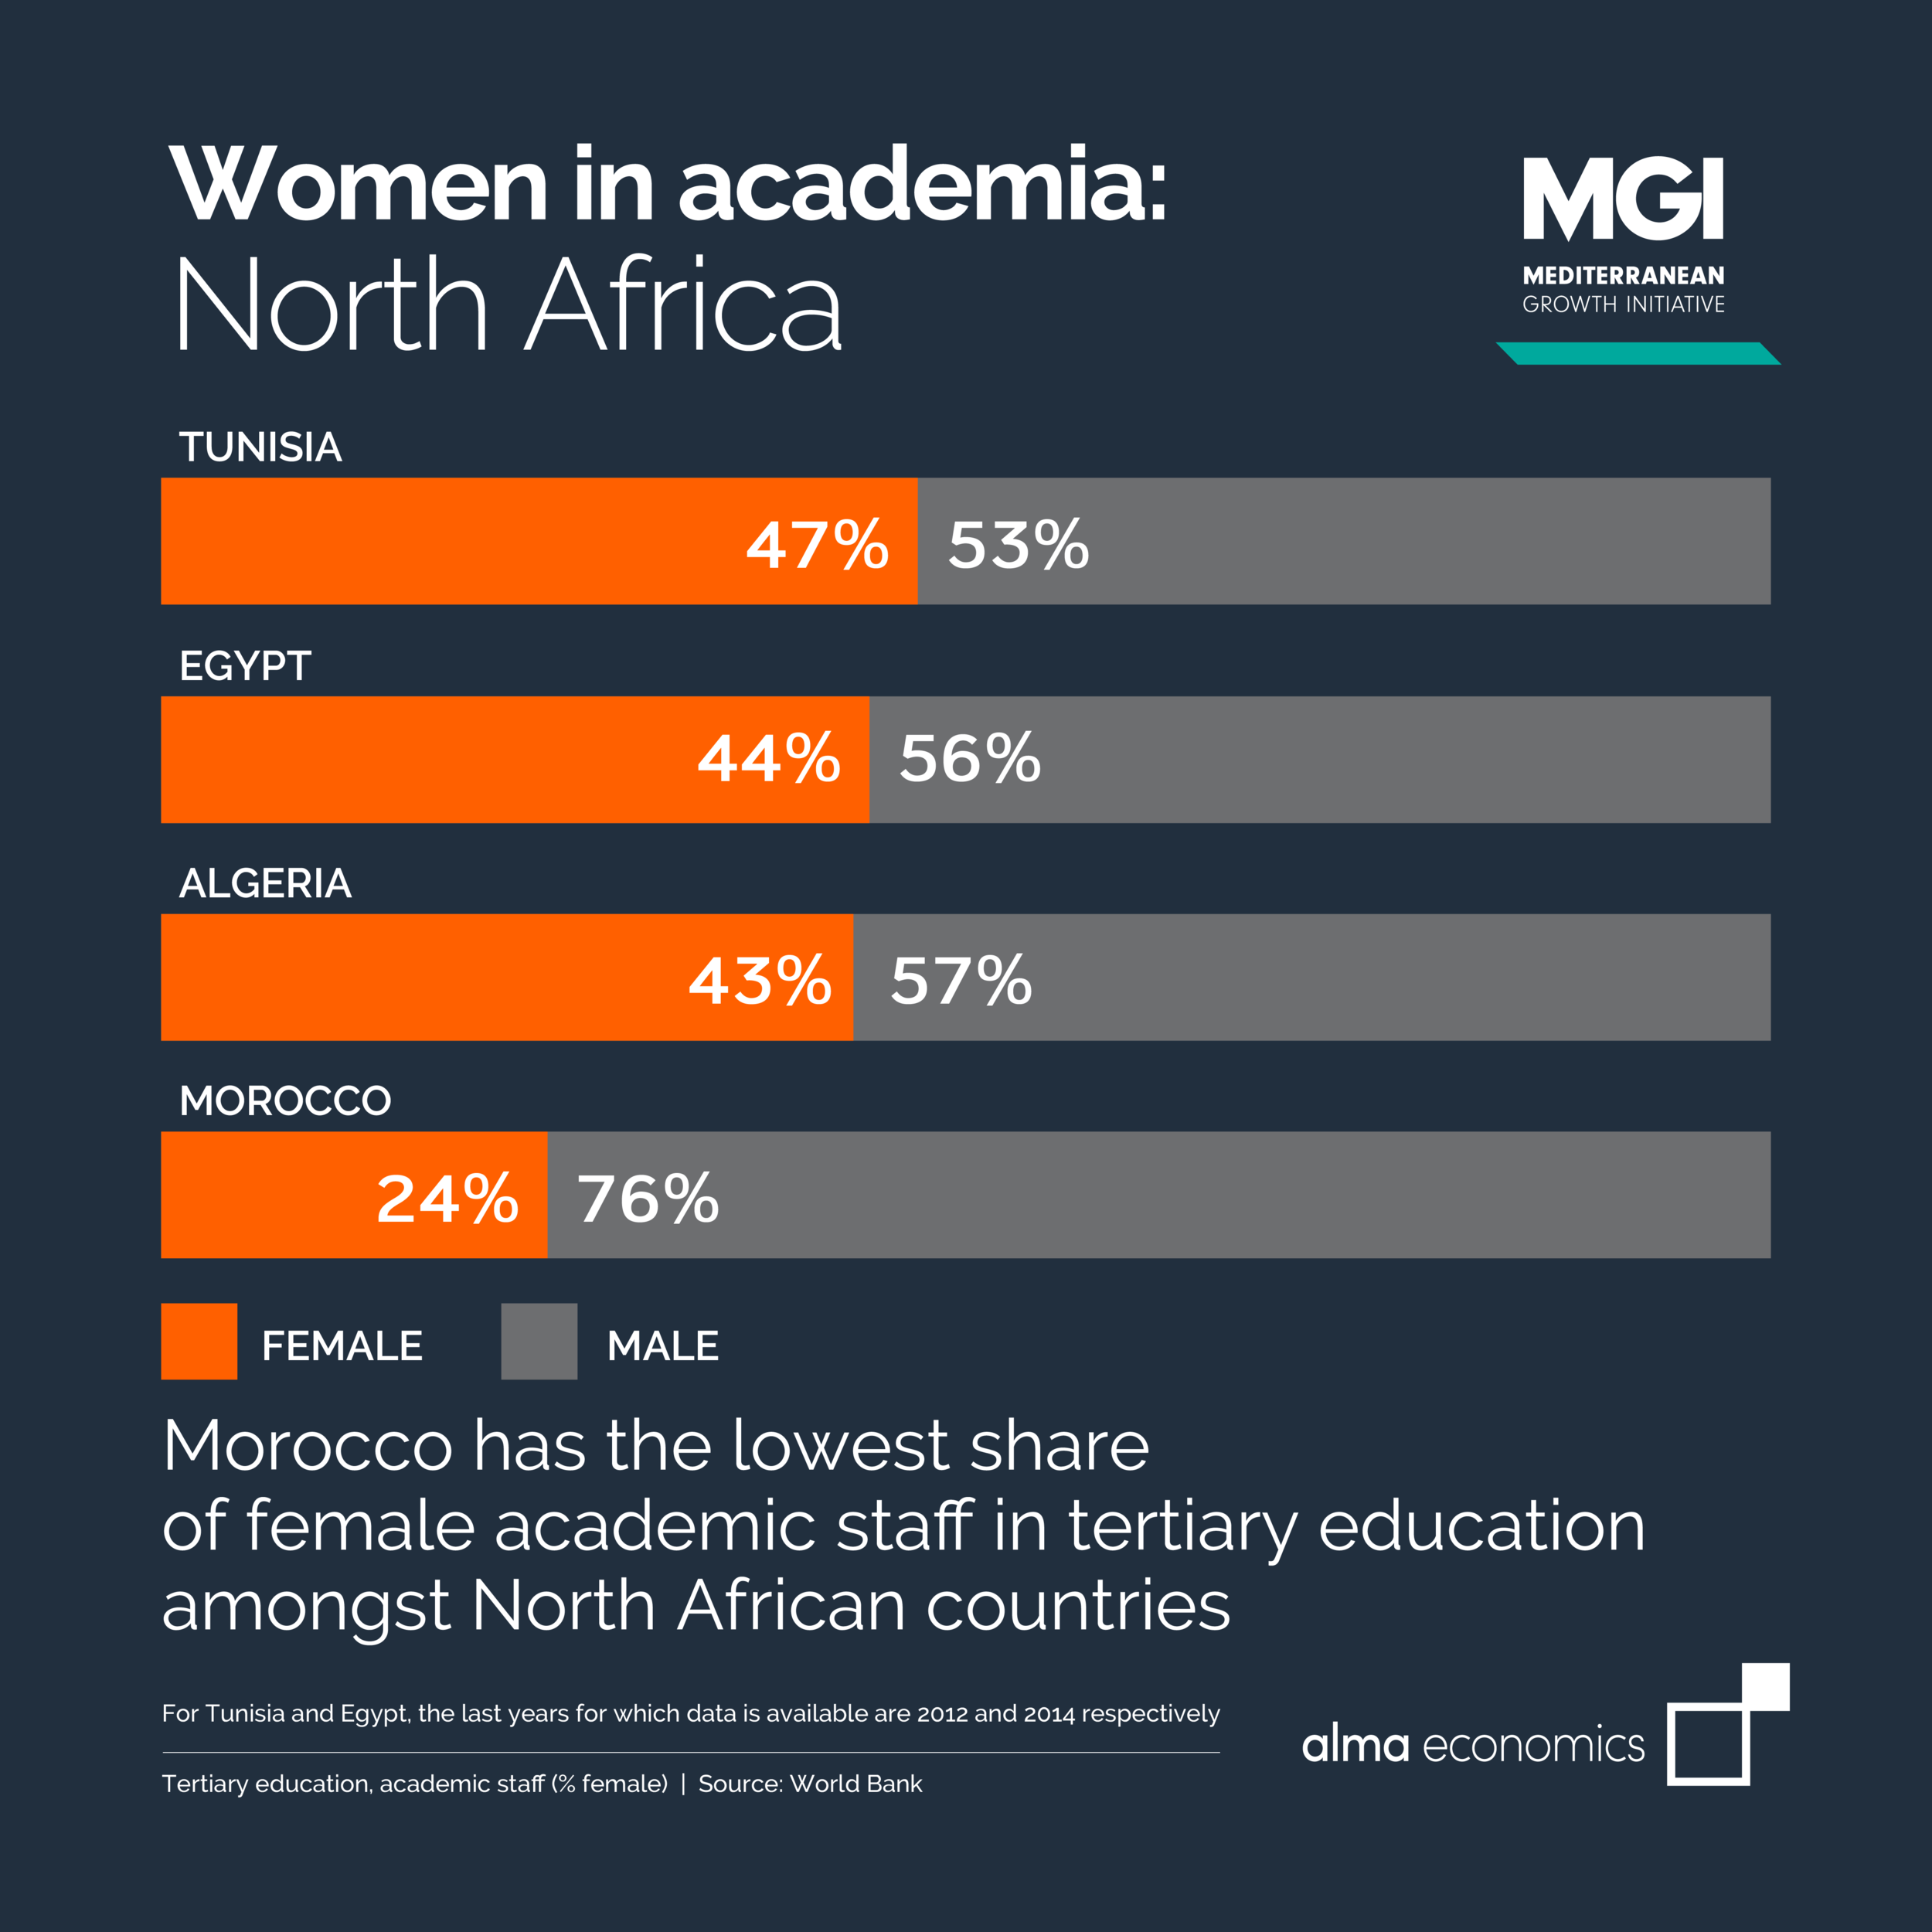 Women in academia: North Africa - Amongst North African countries, Morocco has the lowest share of female academic staff in tertiary education